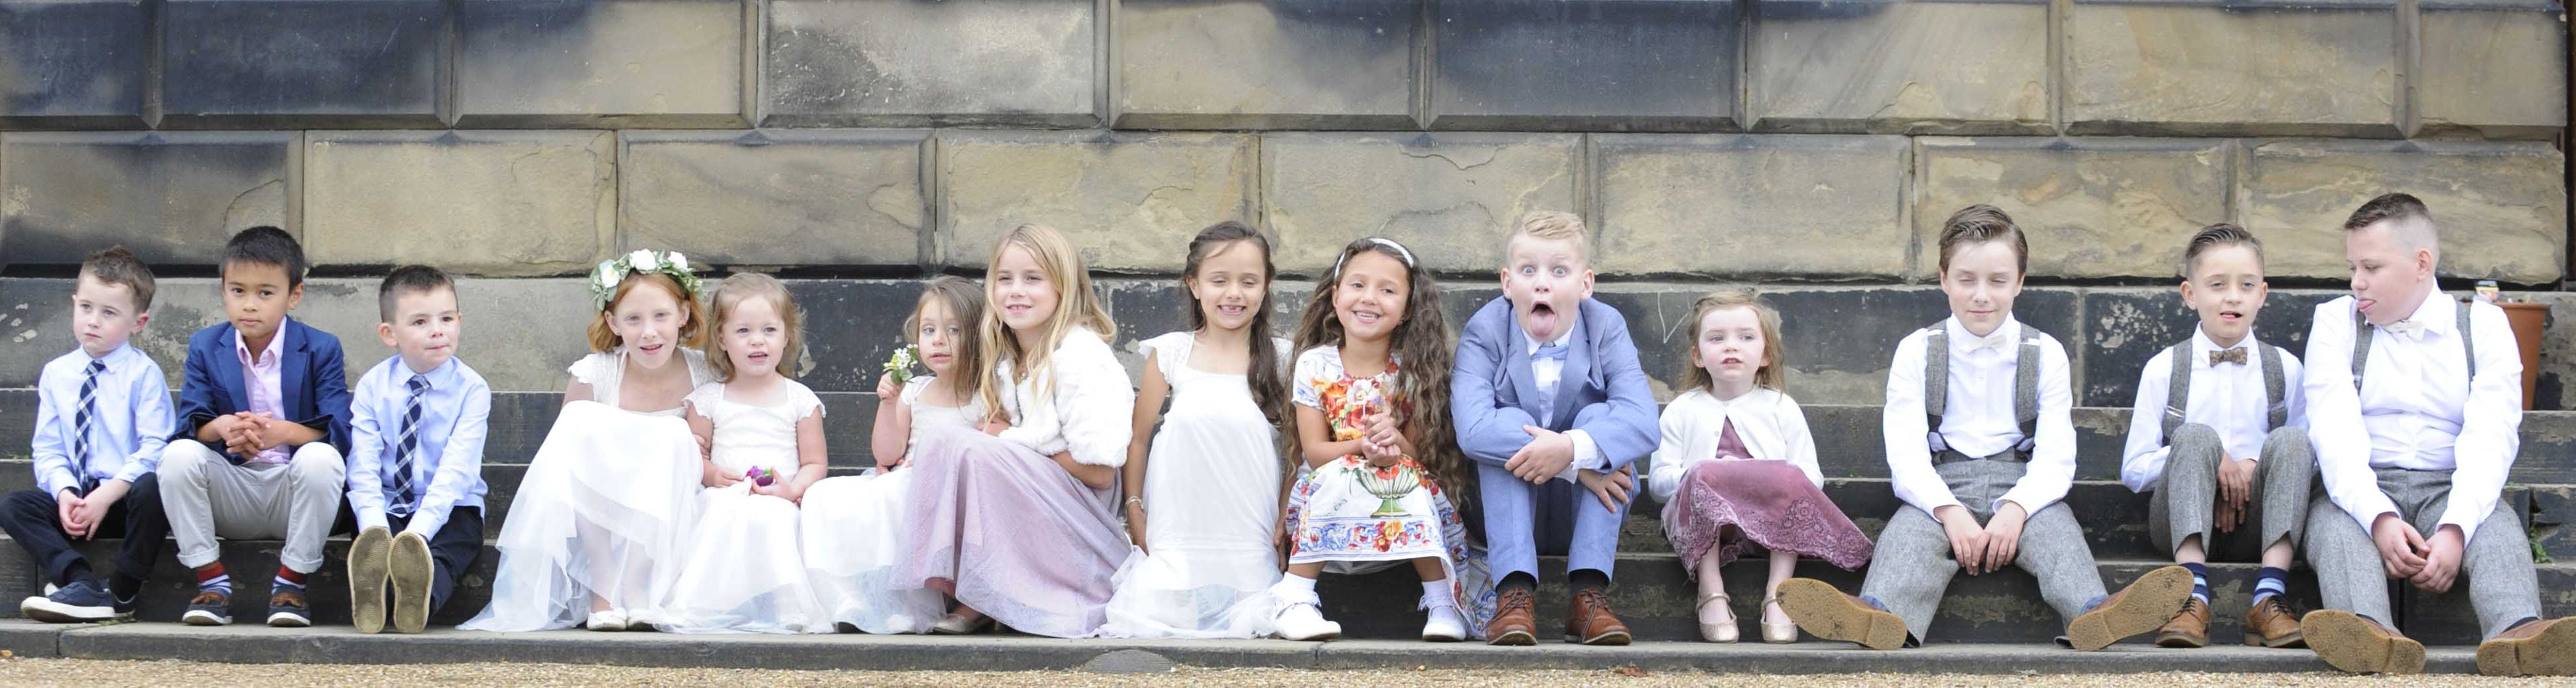 kids sat on a step at a wedding